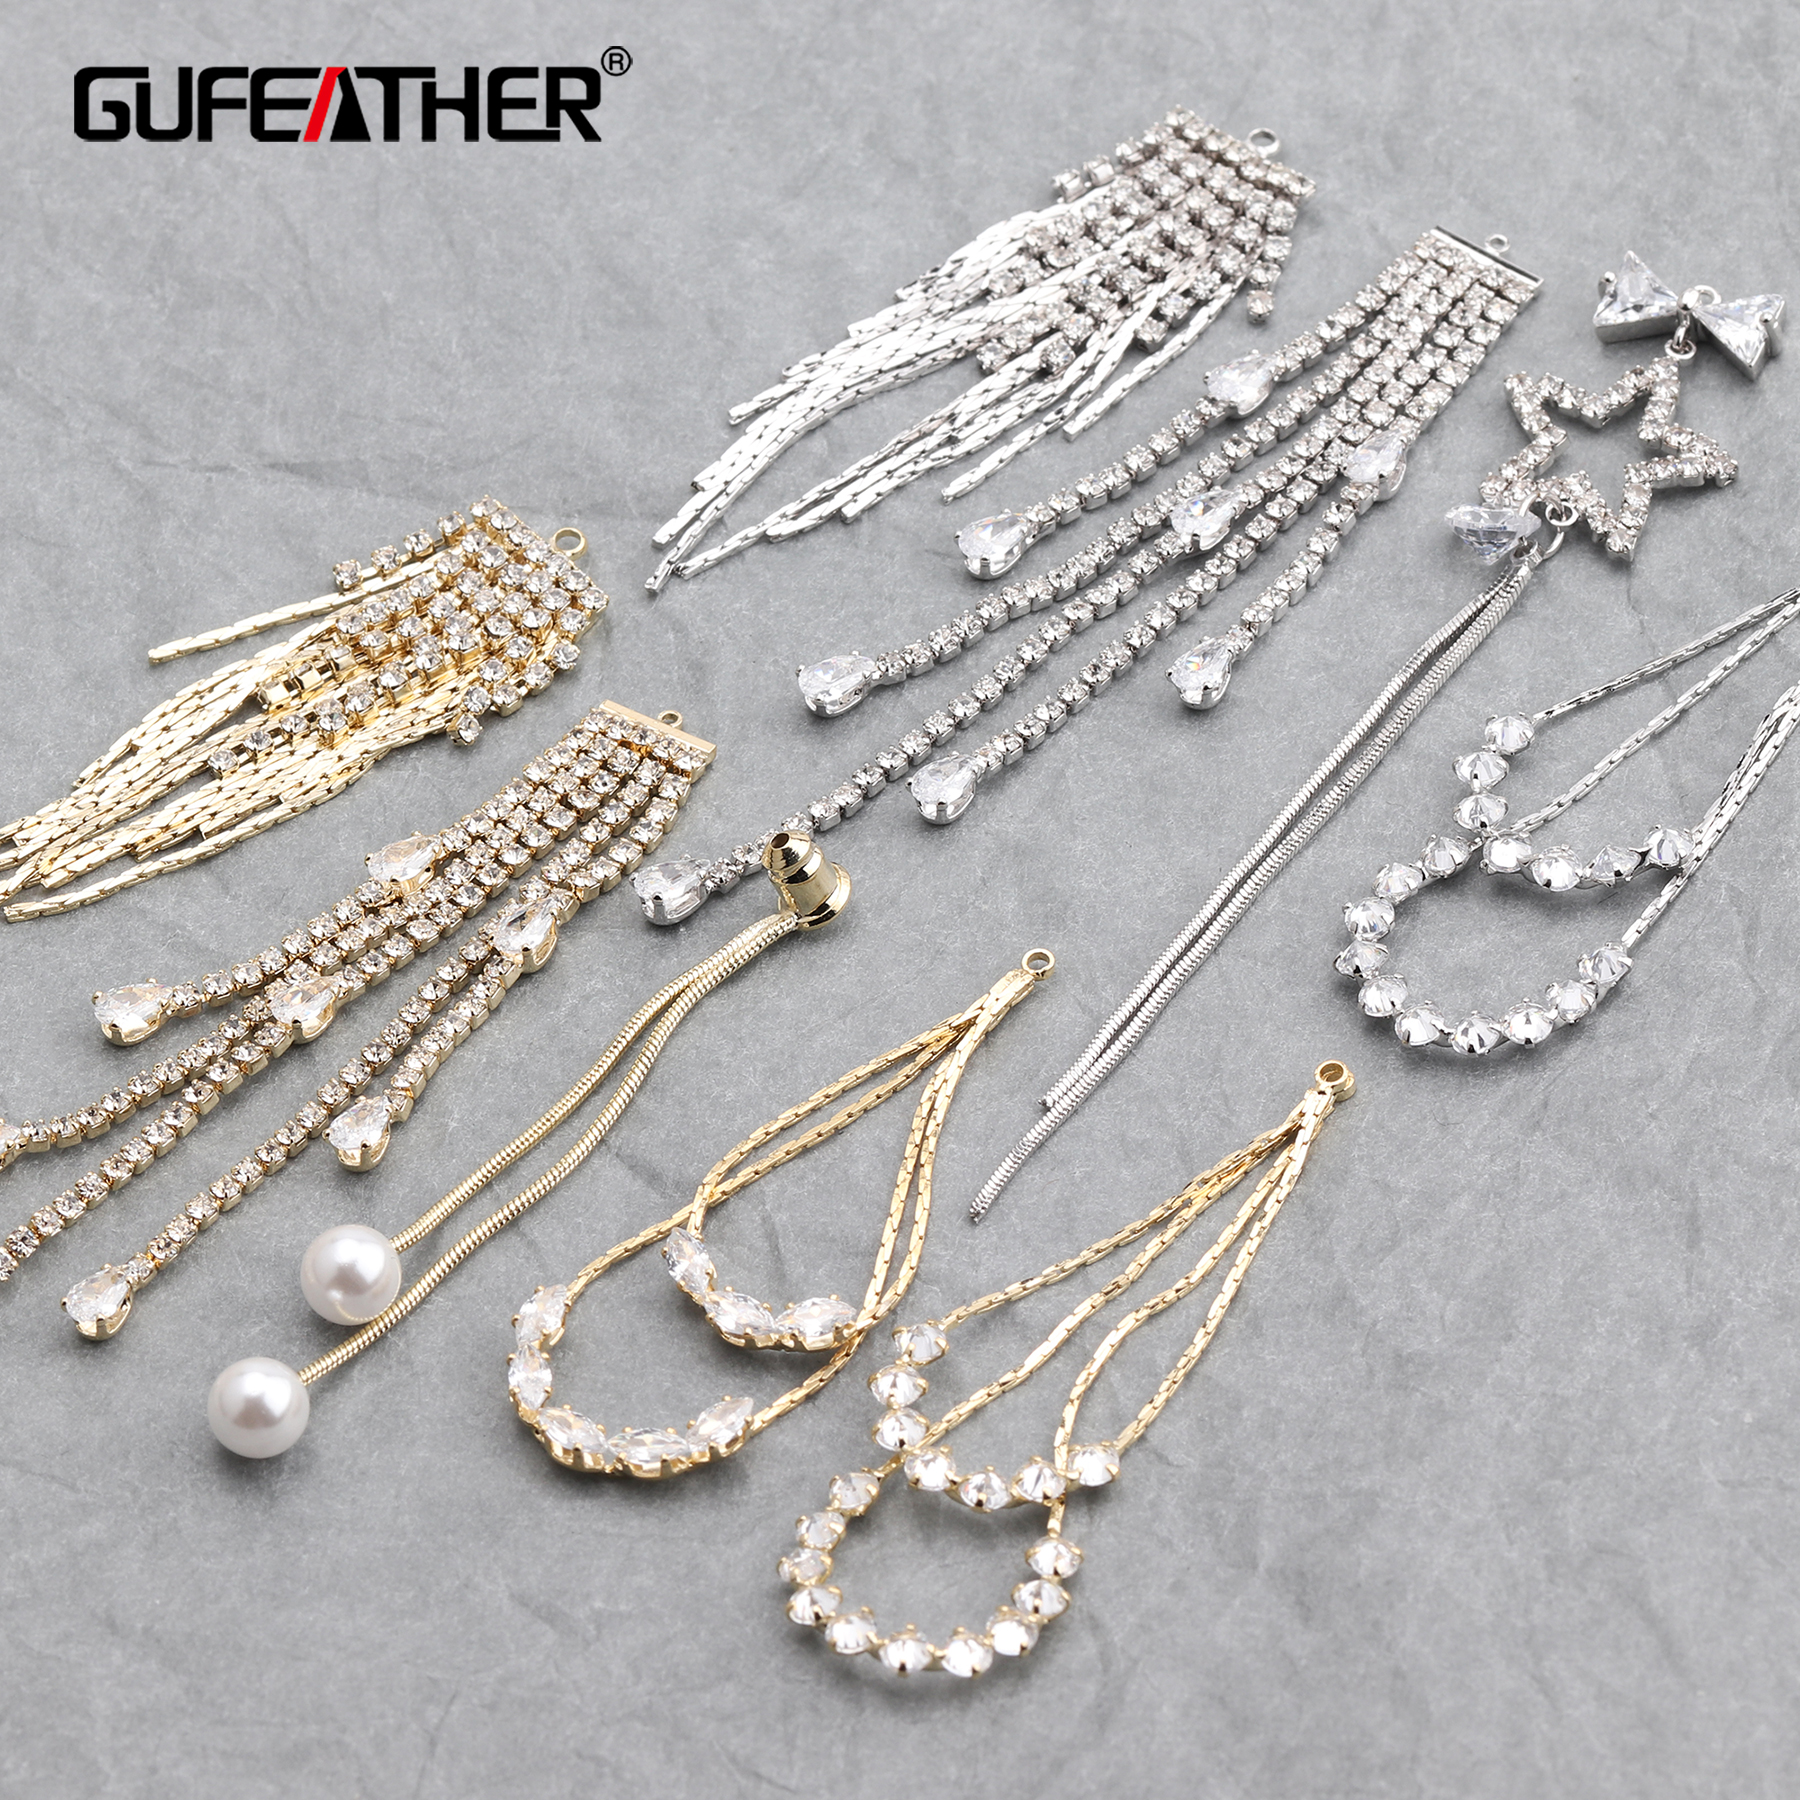 GUFEATHER M631,jewelry Making,diy Tassel Pendant,18k Plated Gold,stable Quality,jewelry Findings,hand Made,diy Earrings,6pcs/lot